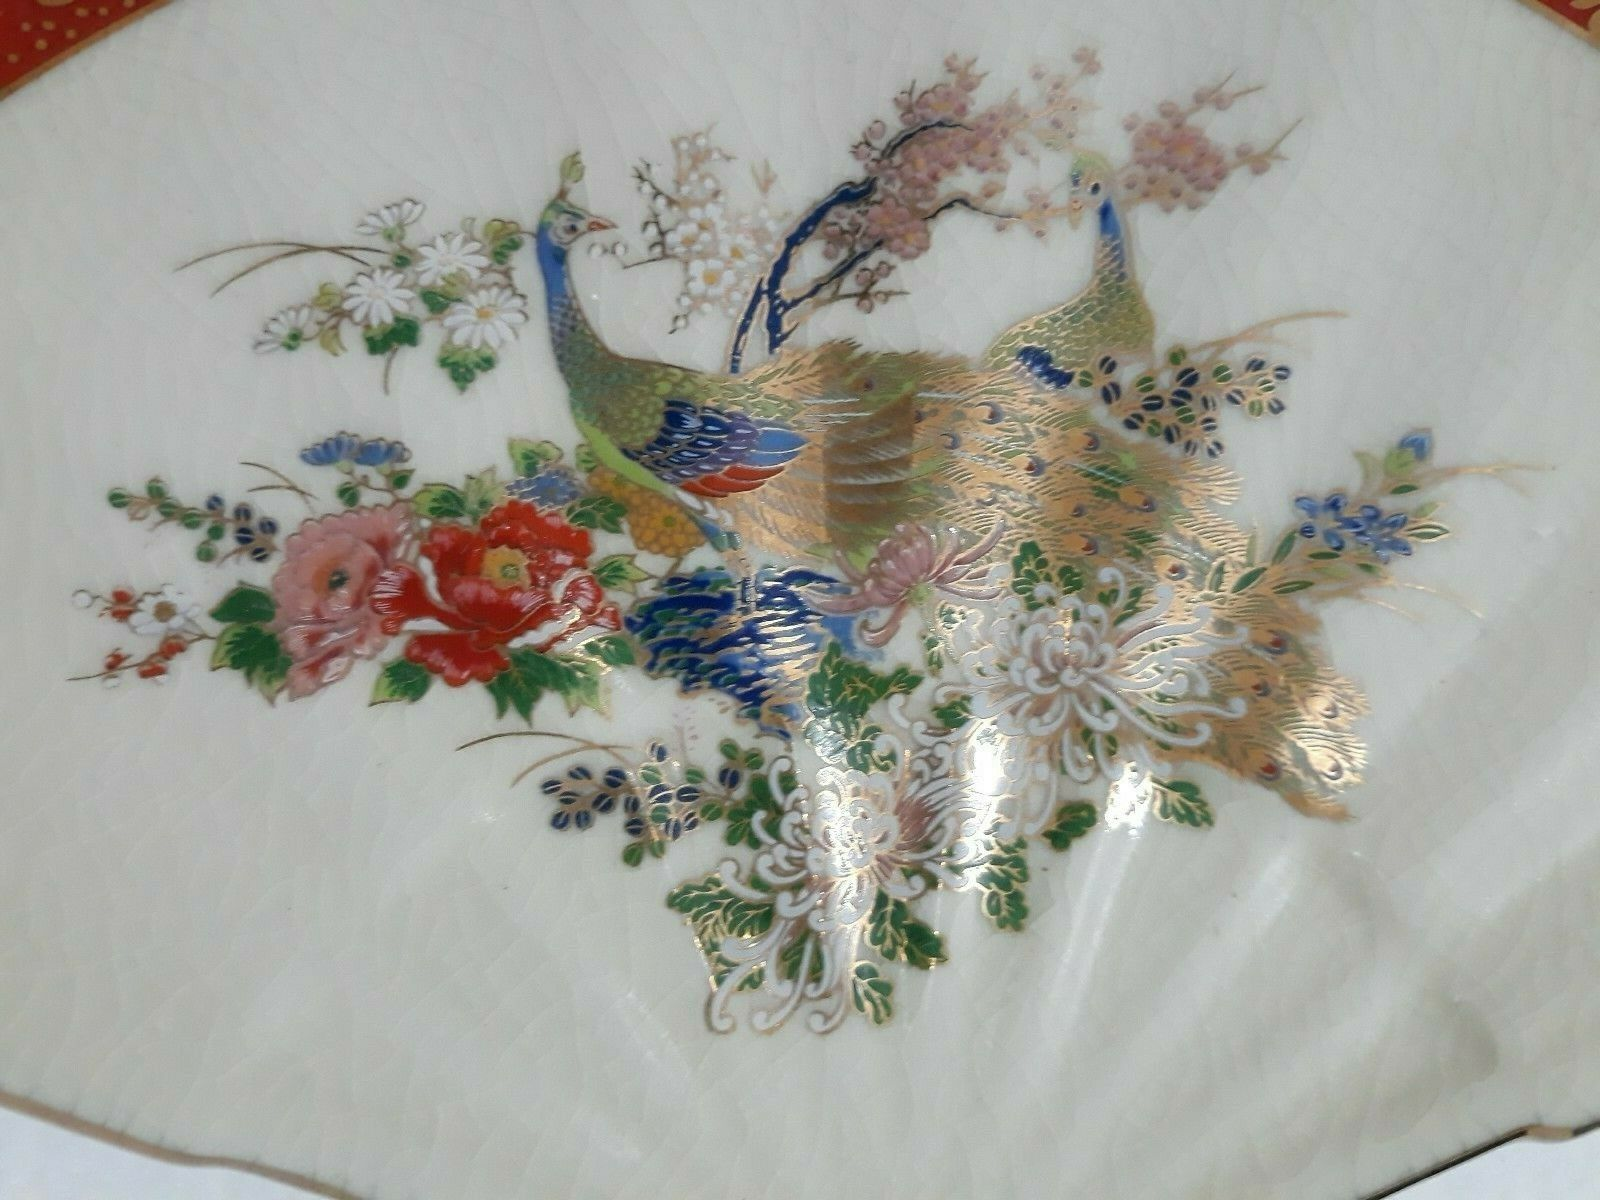 Satsuma Japan Floral Peacock Fan Shaped Oriental With Golden Color Trim Dish - $21.99